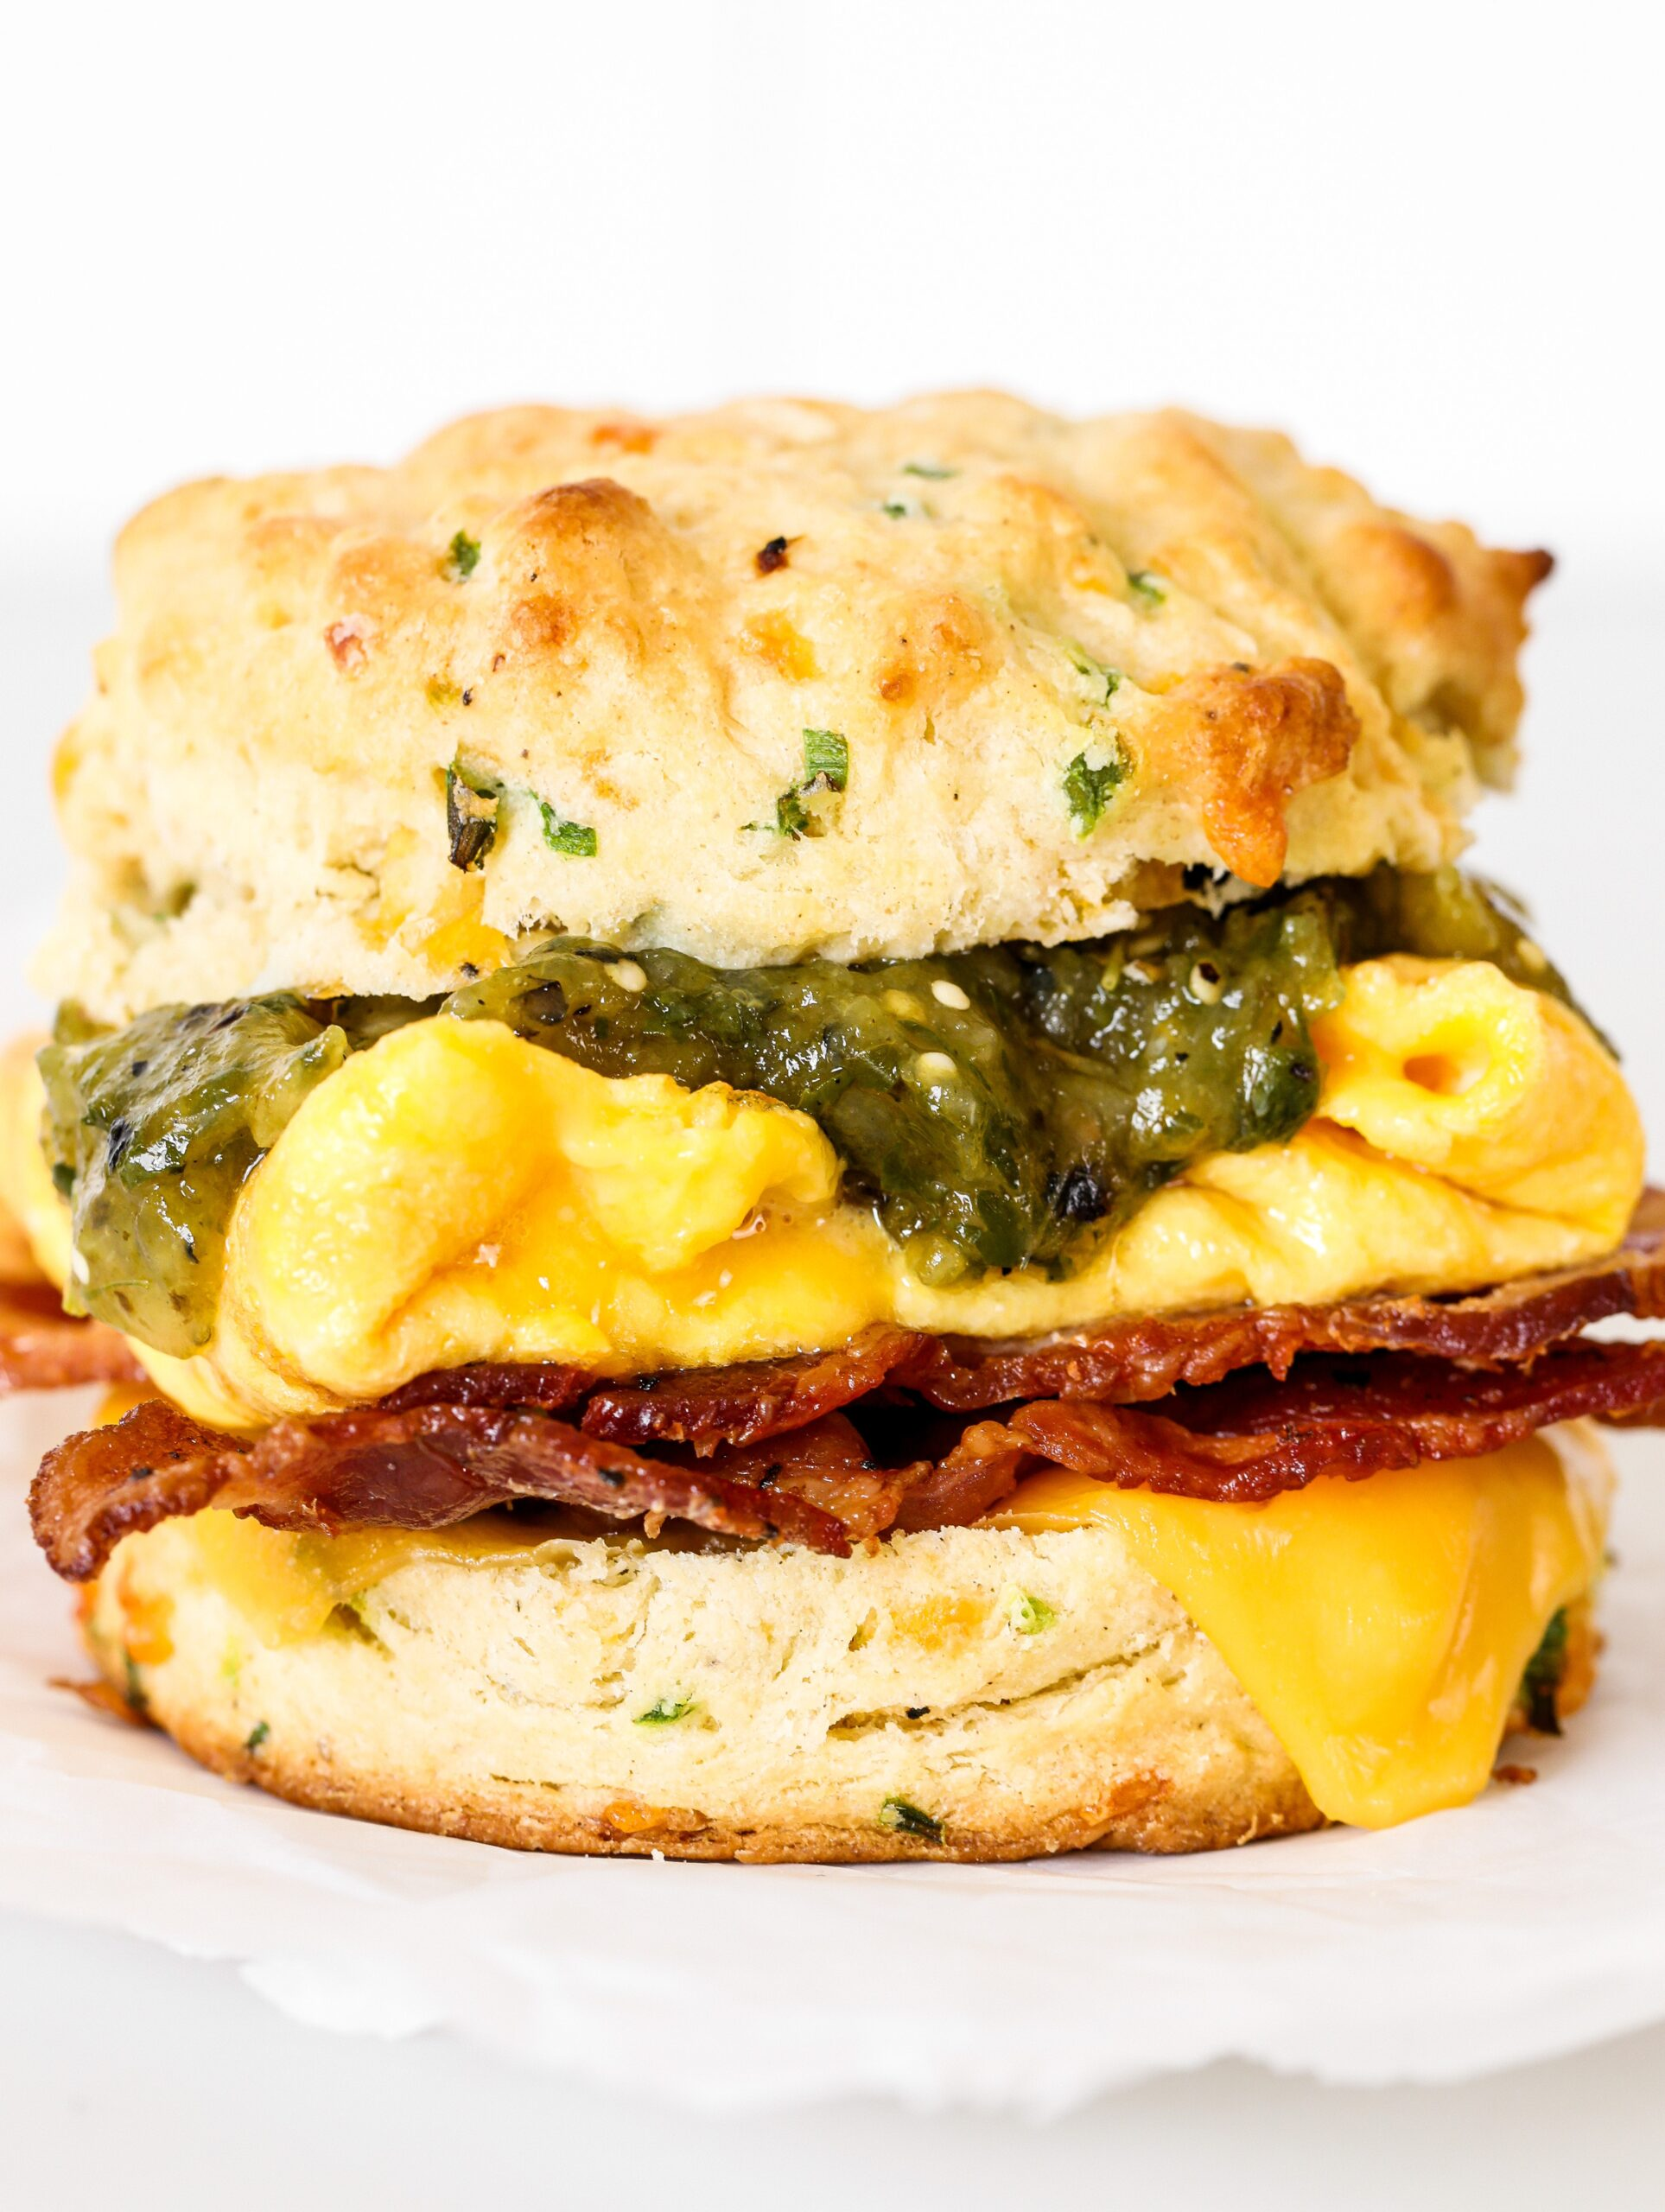 Biscuit Breakfast Sandwich